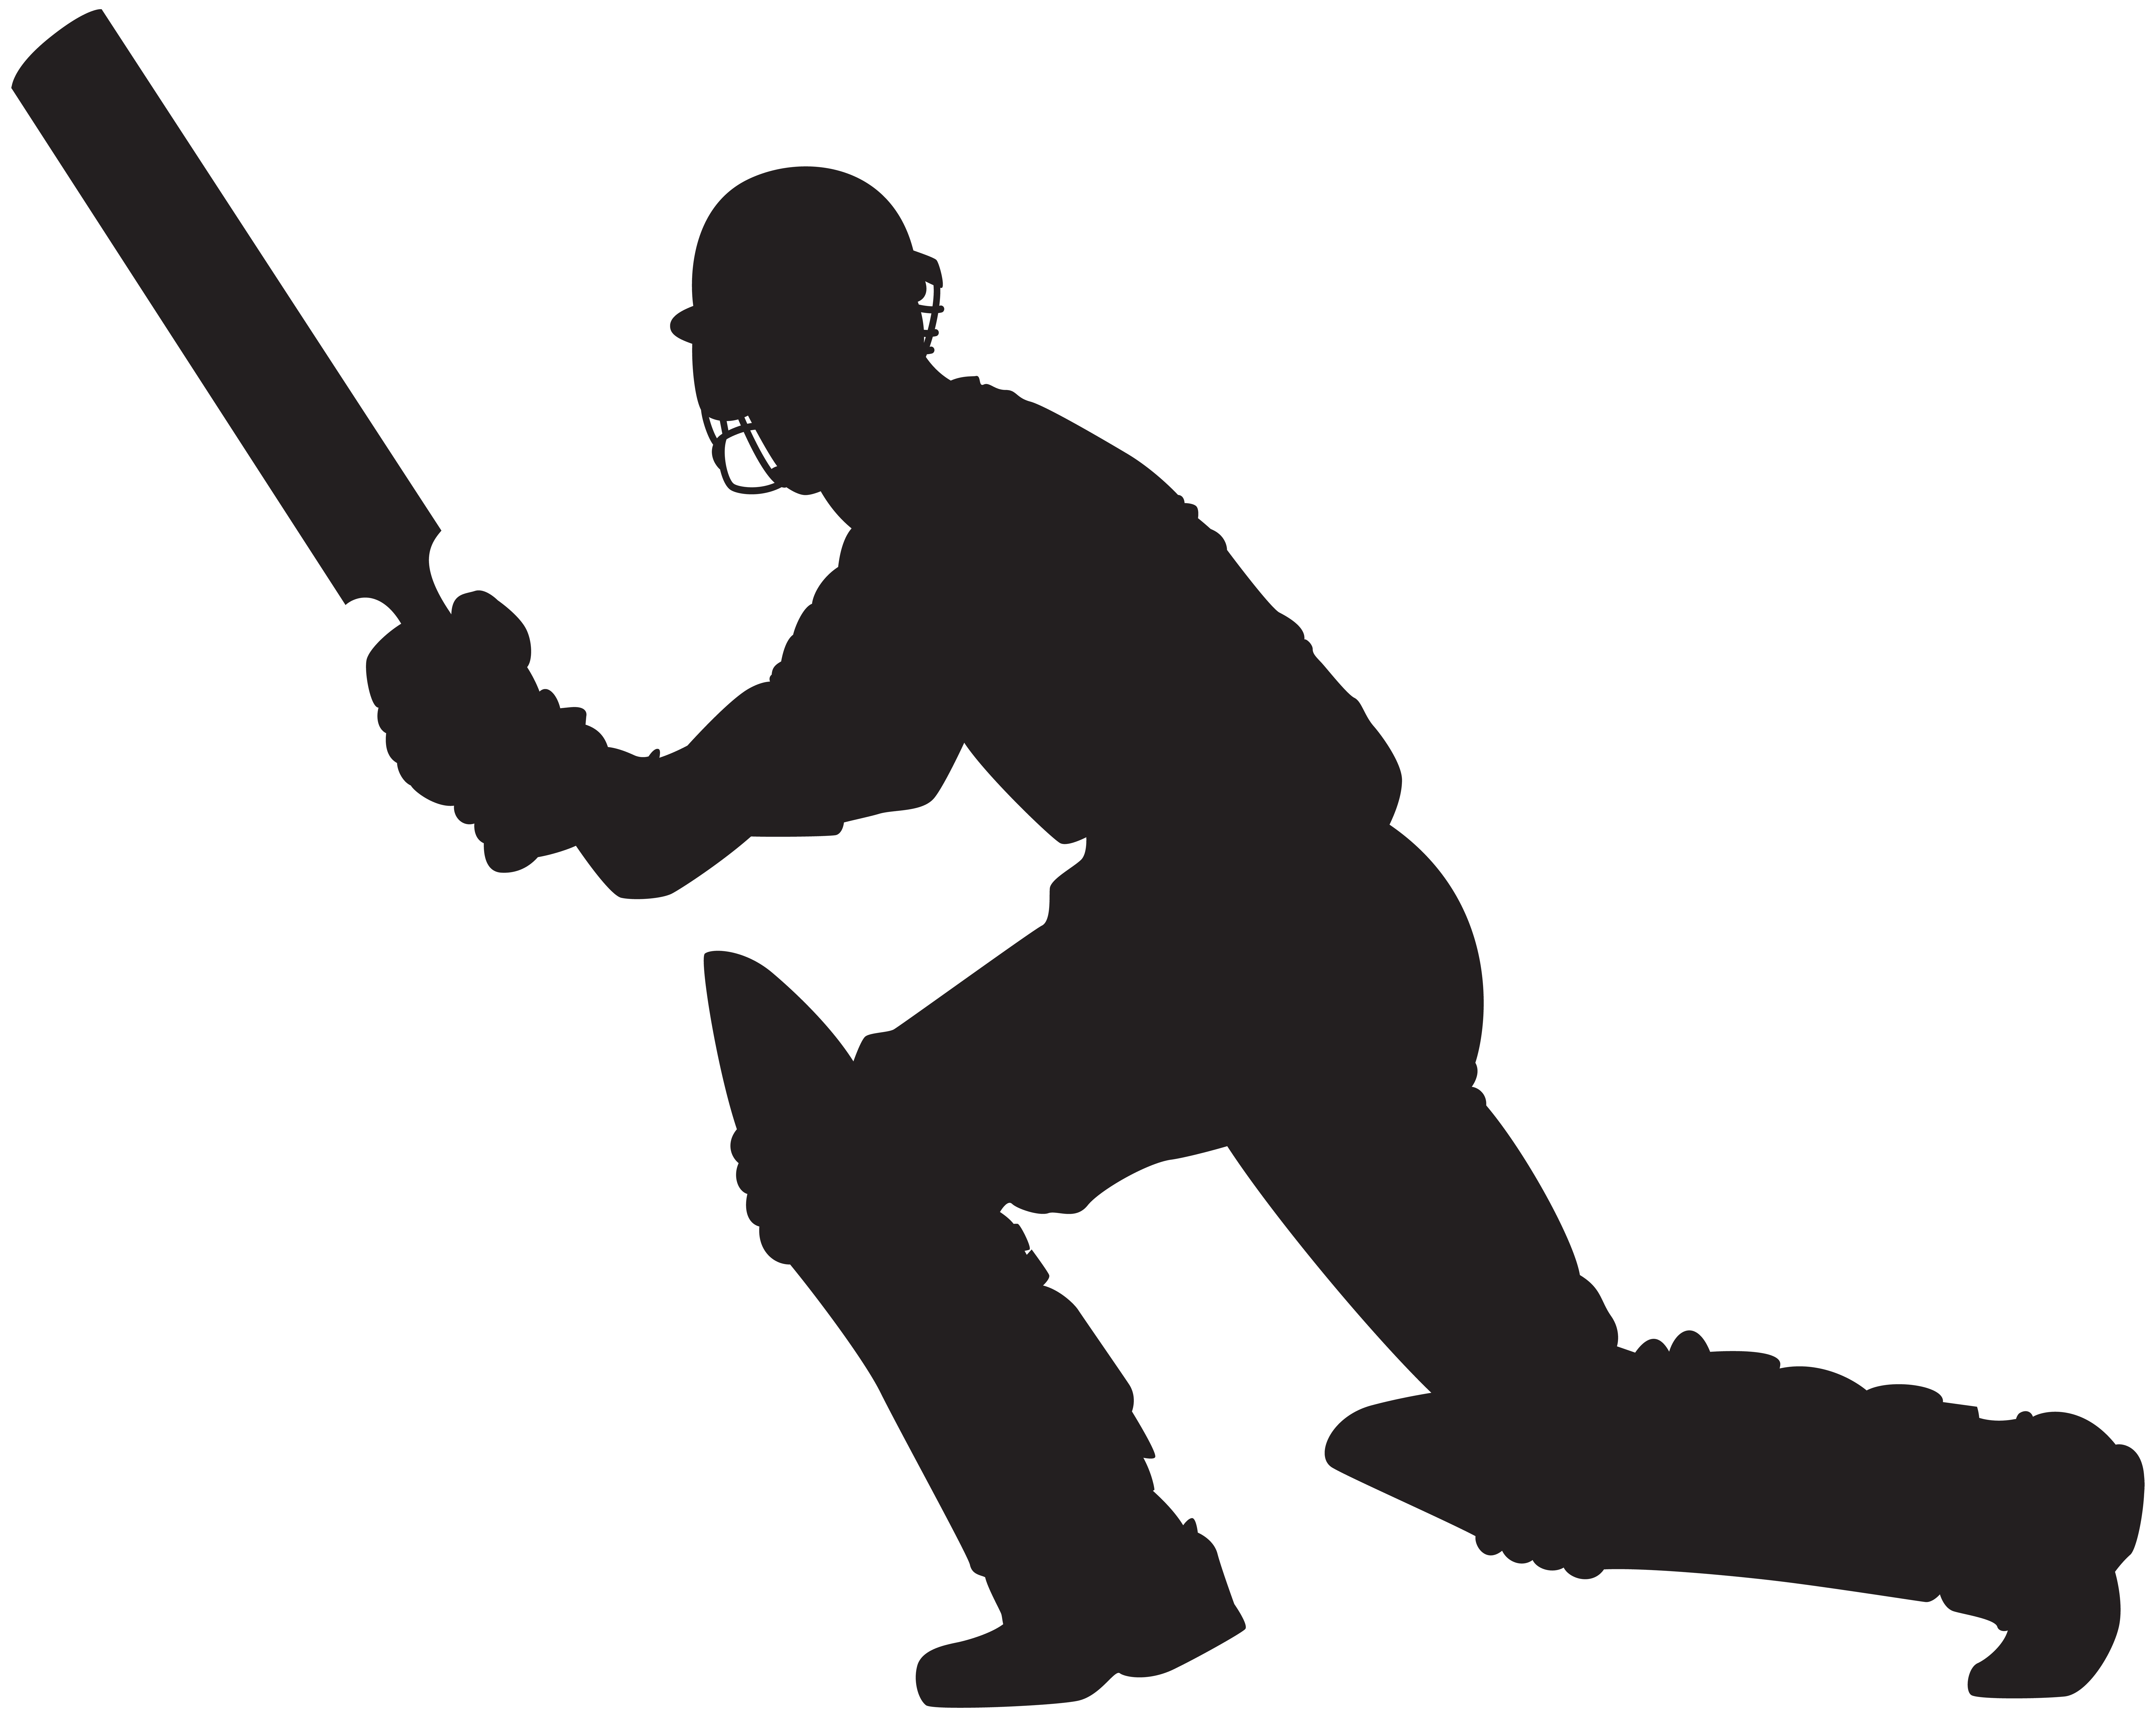 8000x6370 Cricket Player Silhouette PNG Clip Art Imageu200b Gallery